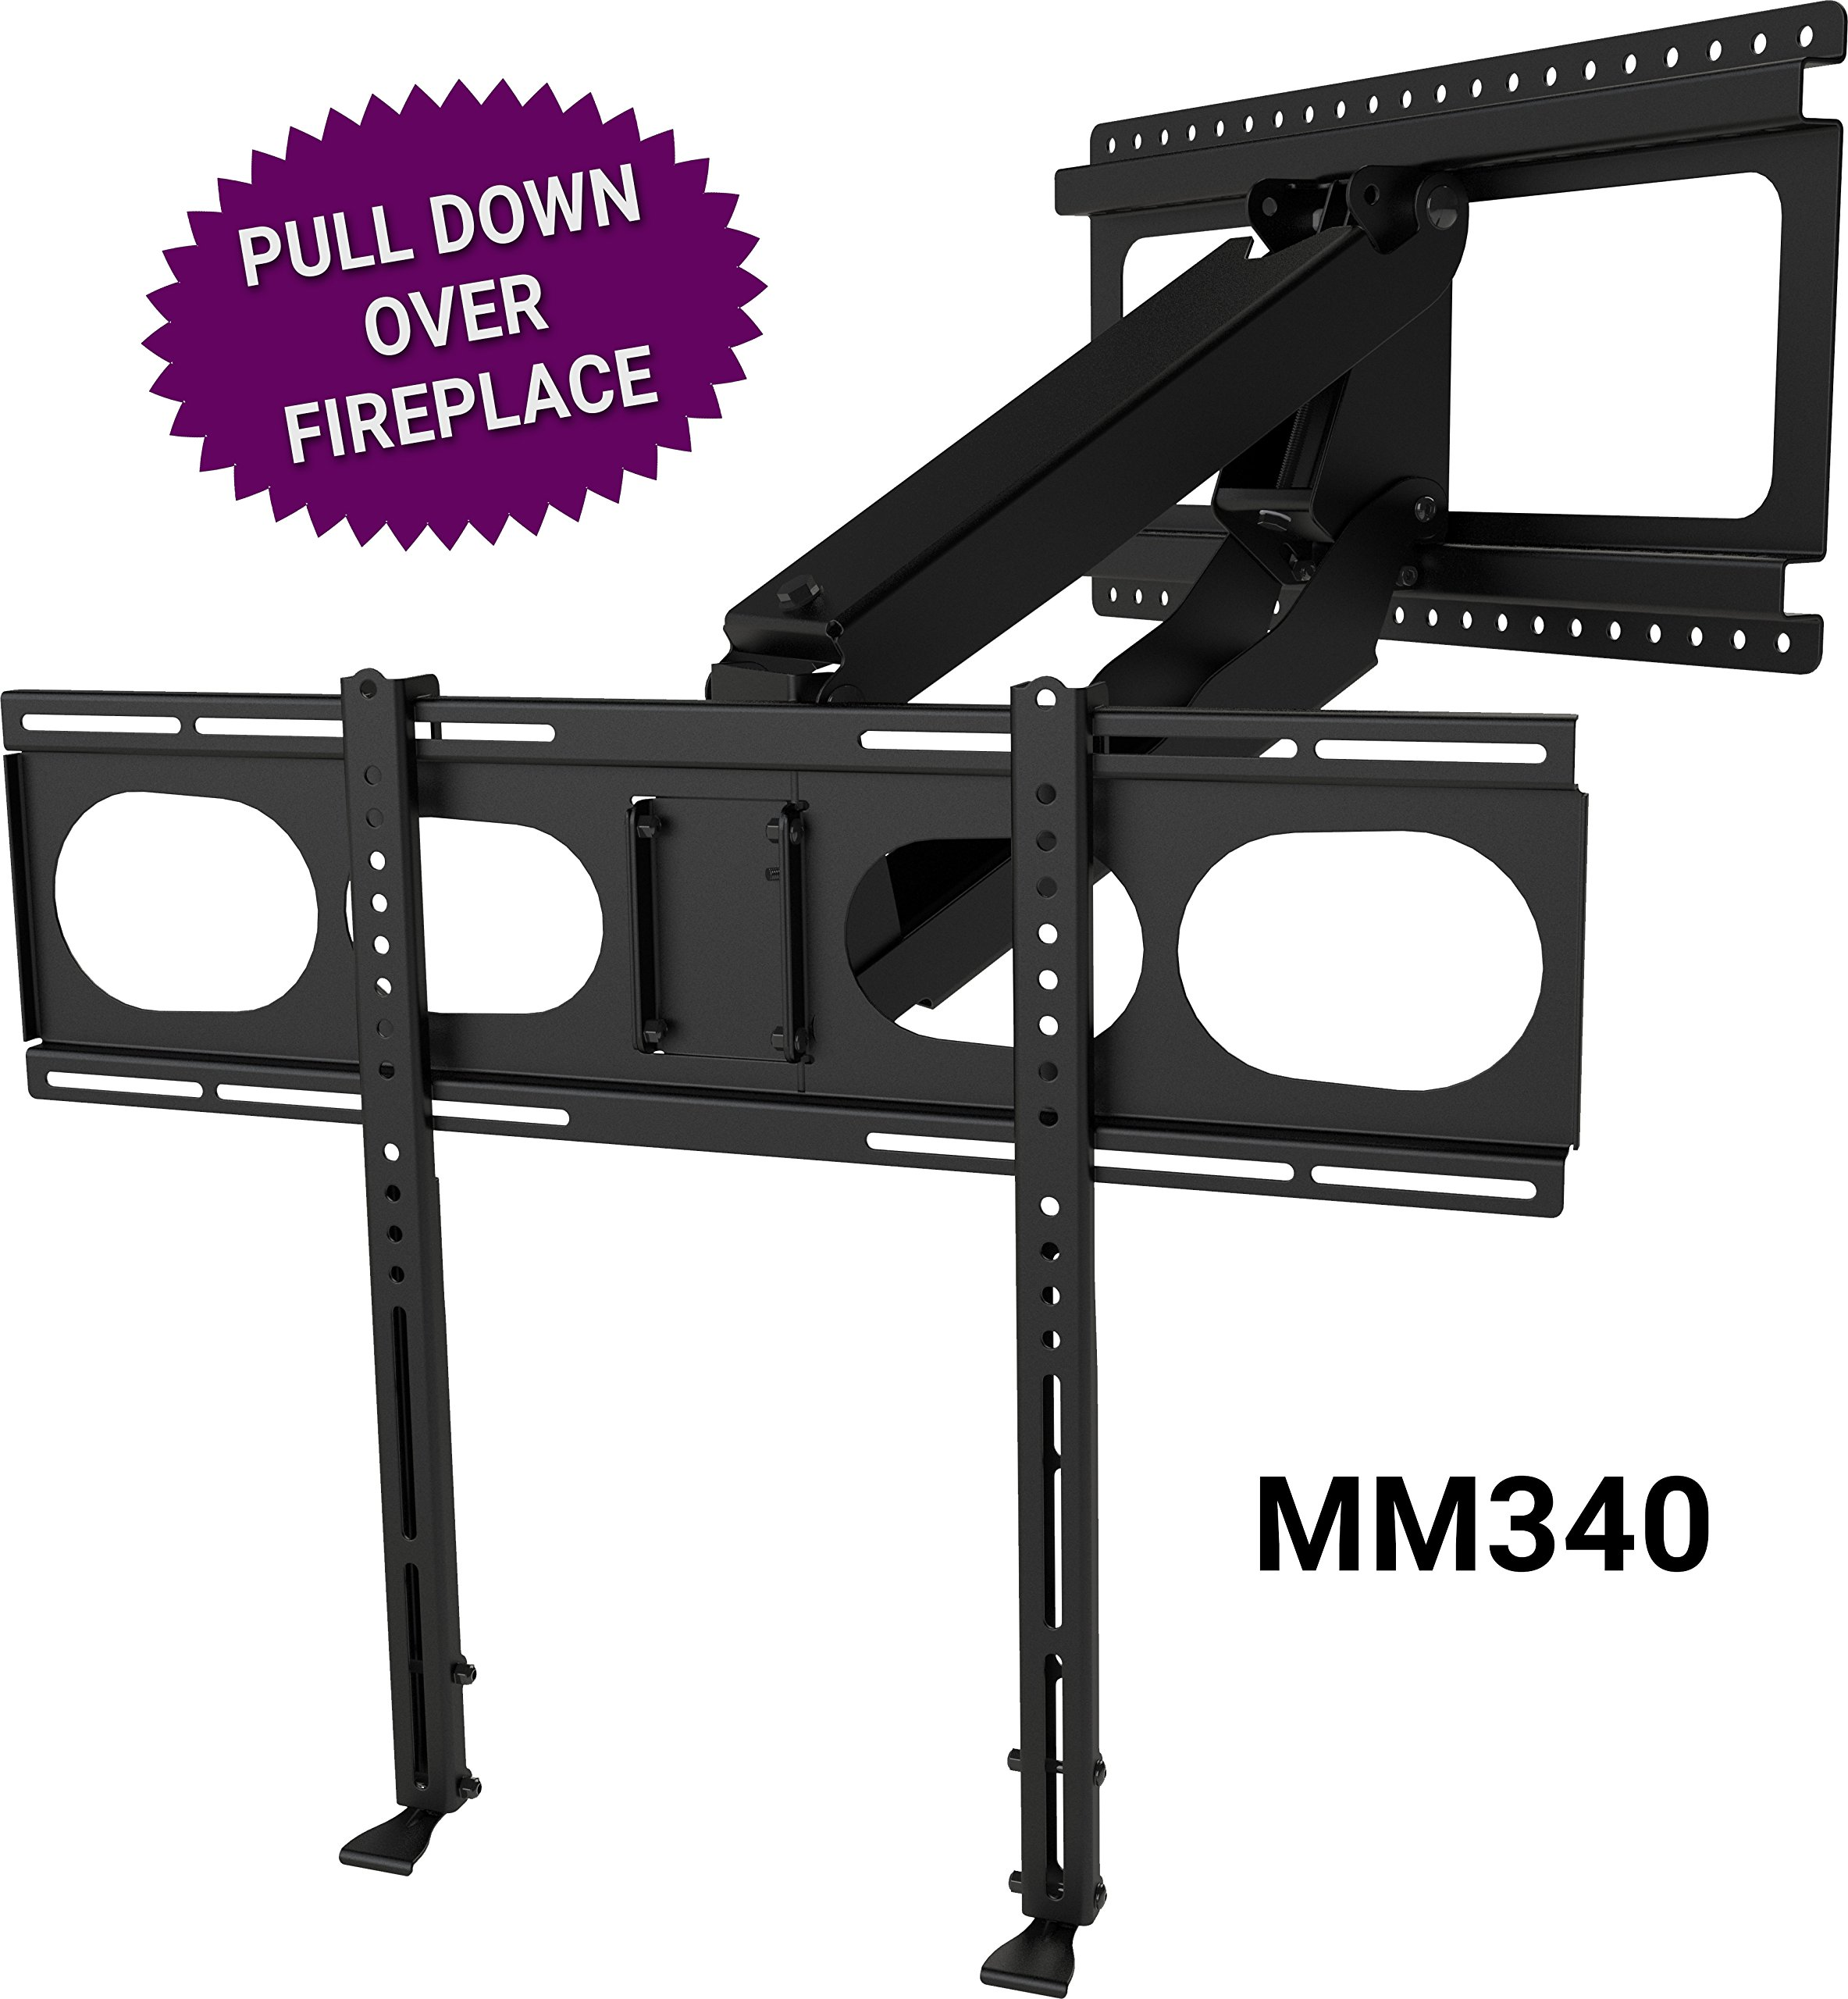 MantelMount MM340 - Above Fireplace Pull Down TV Mount by MantelMount